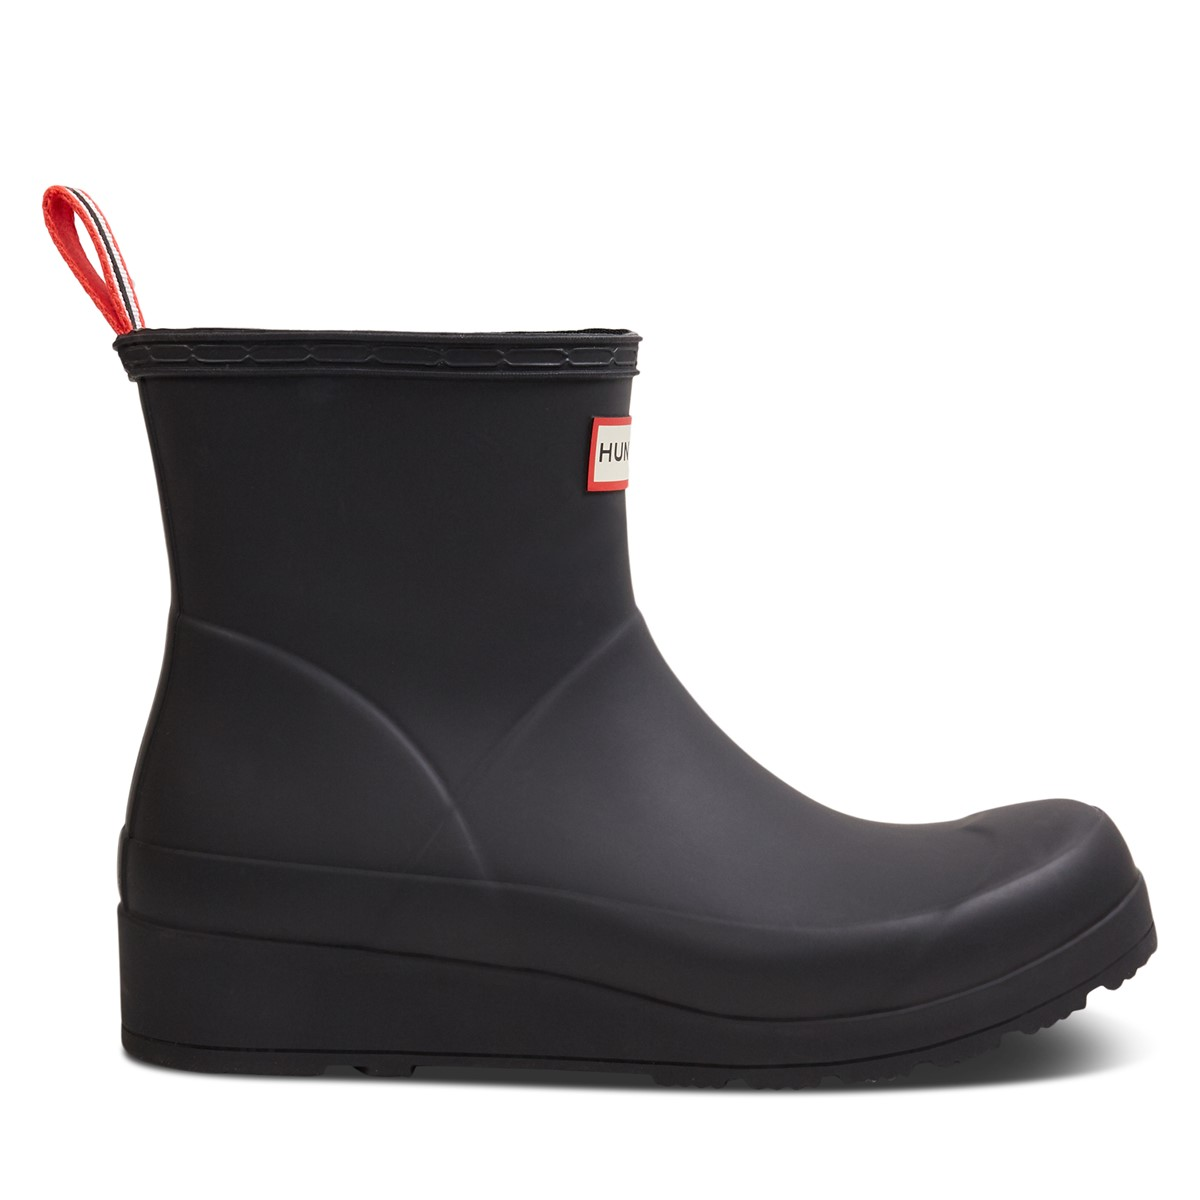 Women's Original Play Short Rain Boots in Black